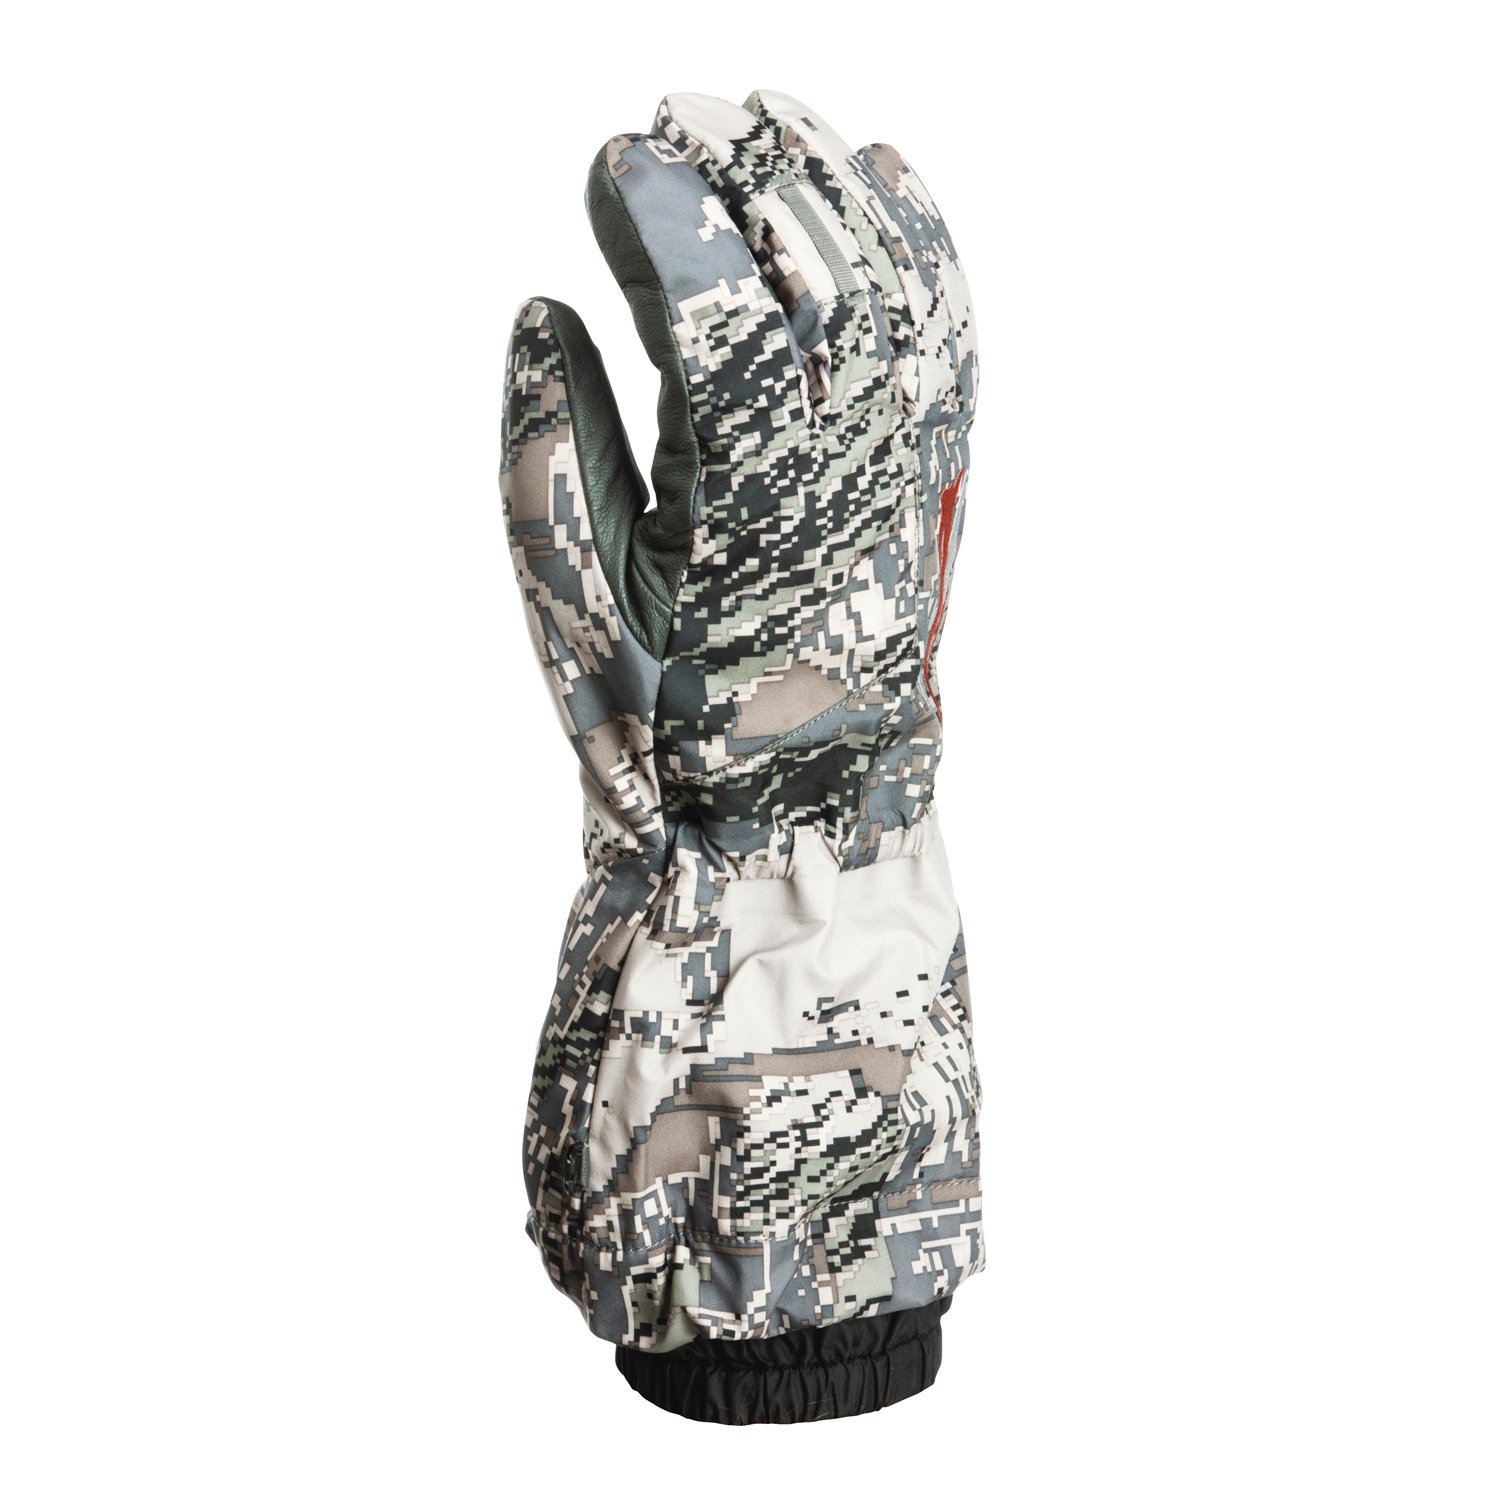 Sitka Gear Men's Stormfront Waterproof Insulated Glove, Optifade Open Country, X-Large